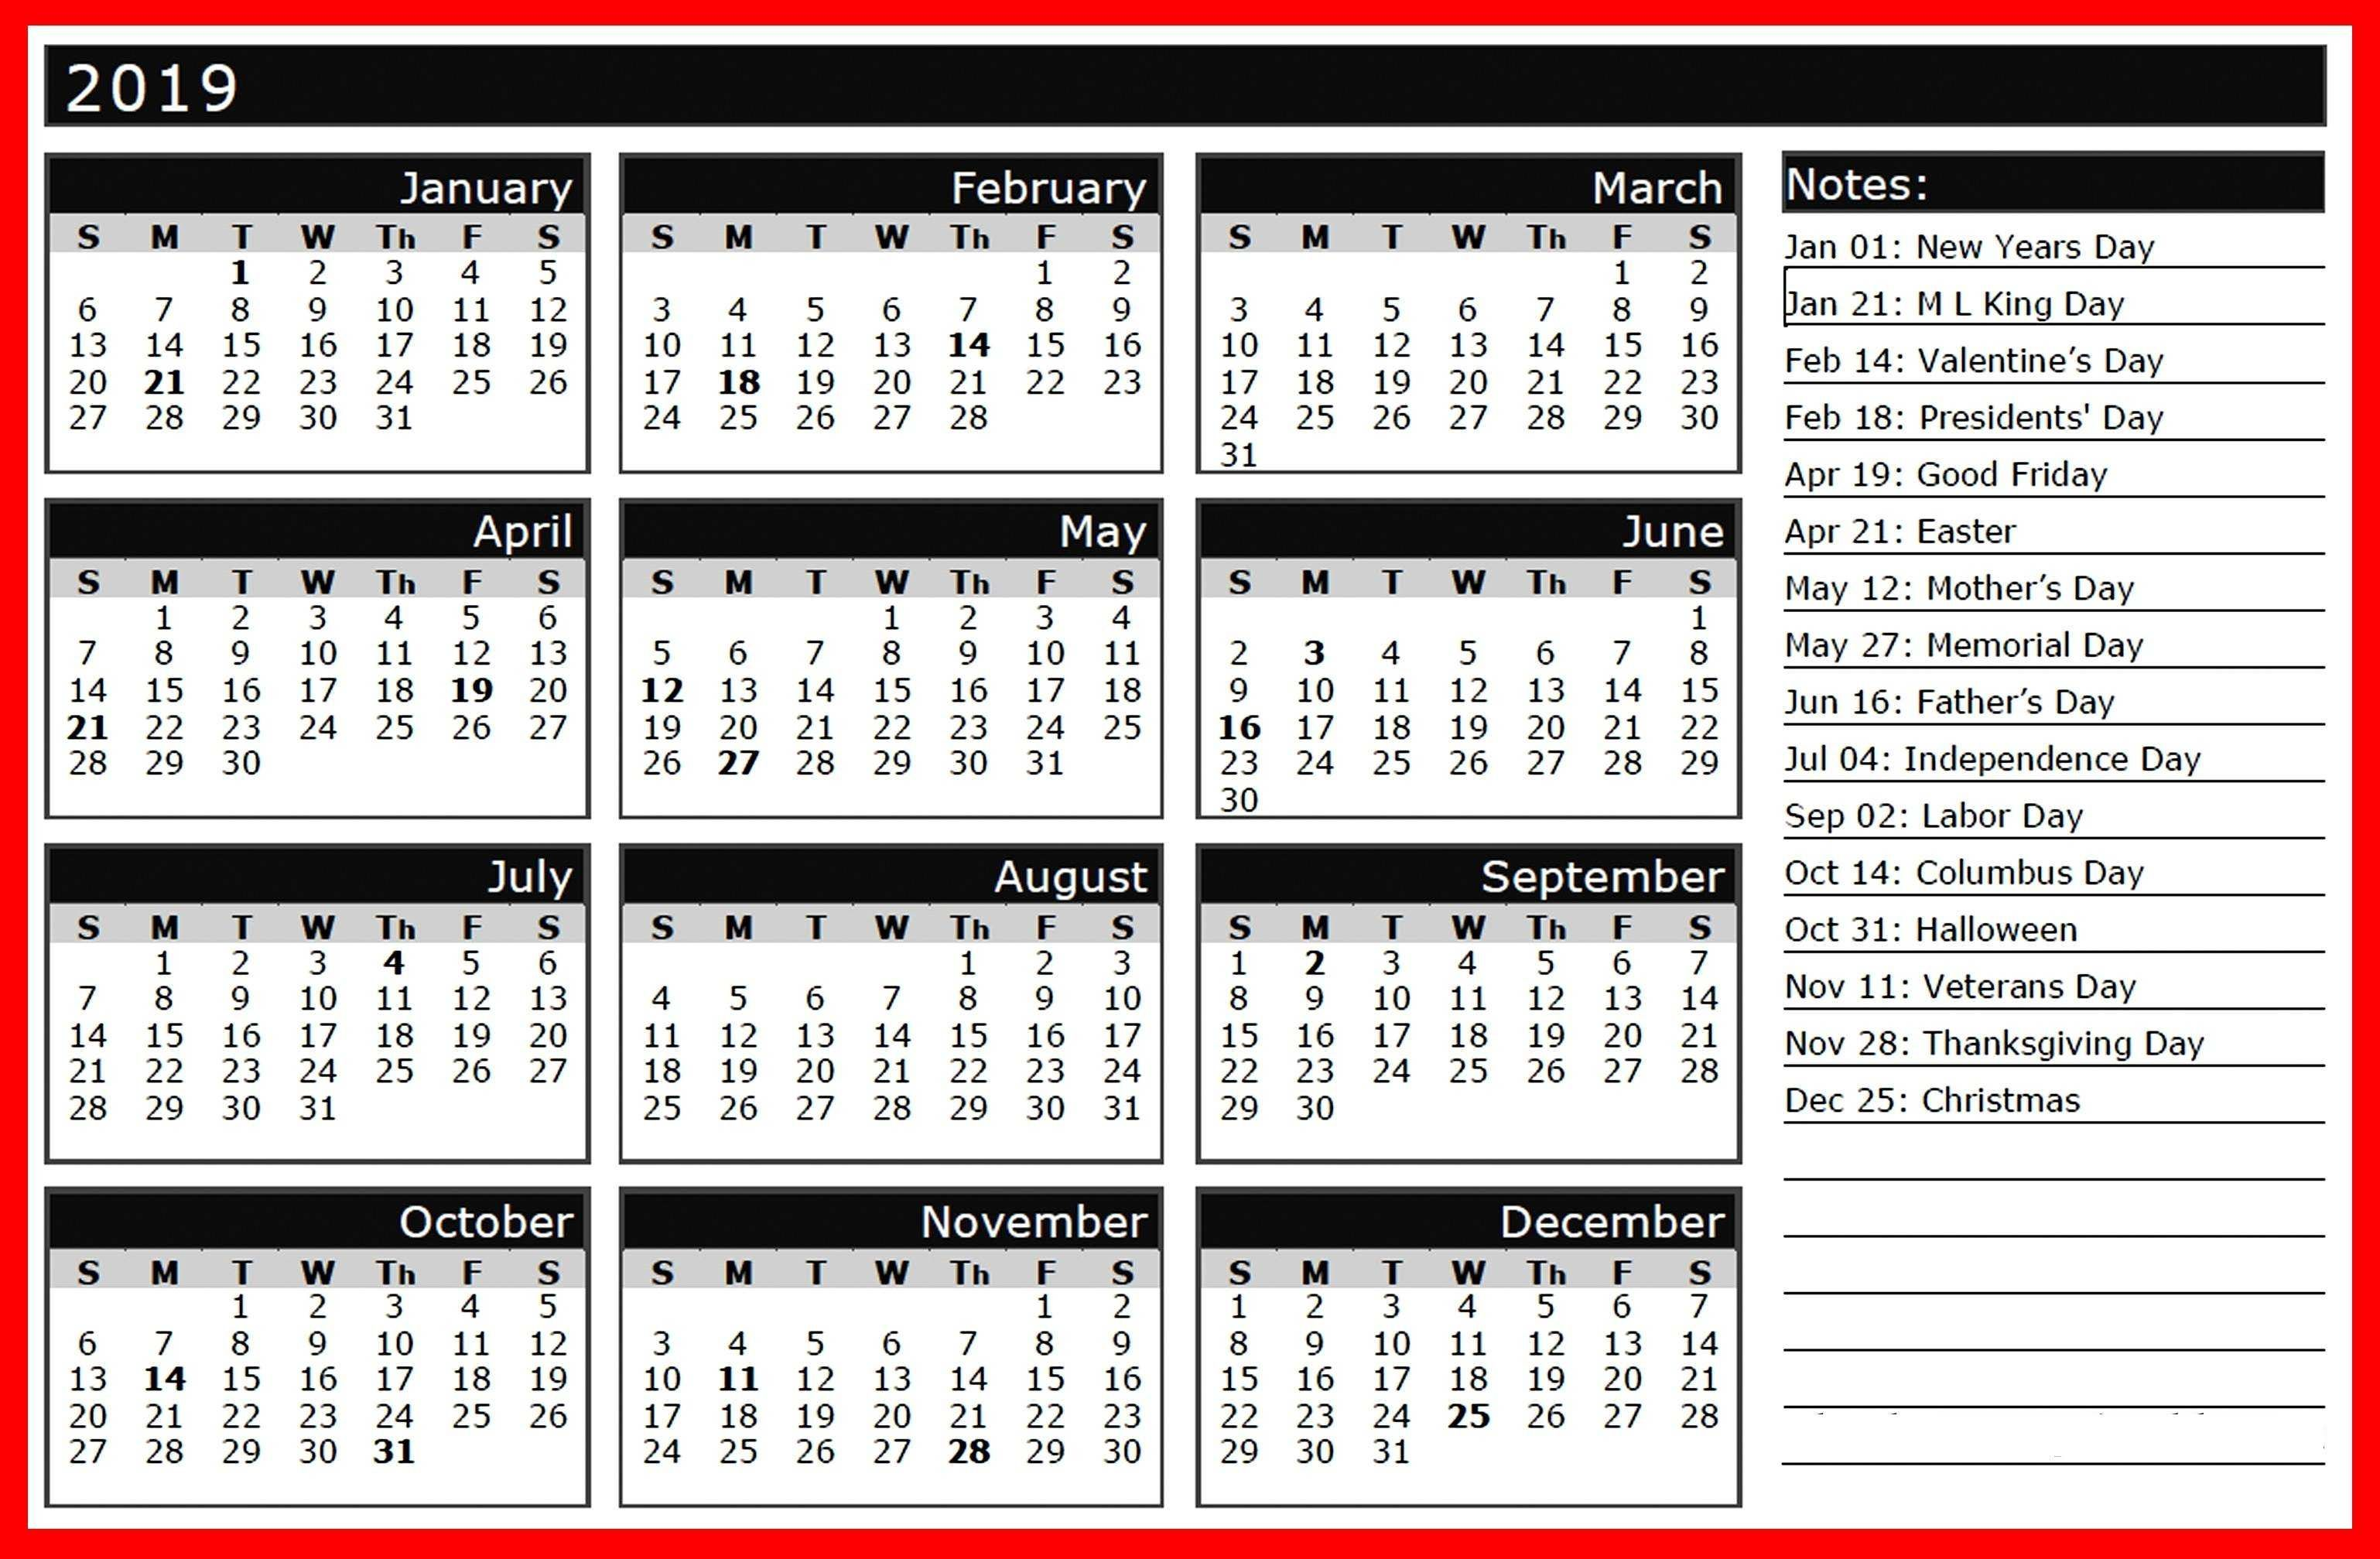 2019 holiday calendar india calendar2019 printablecalendar holidays2019